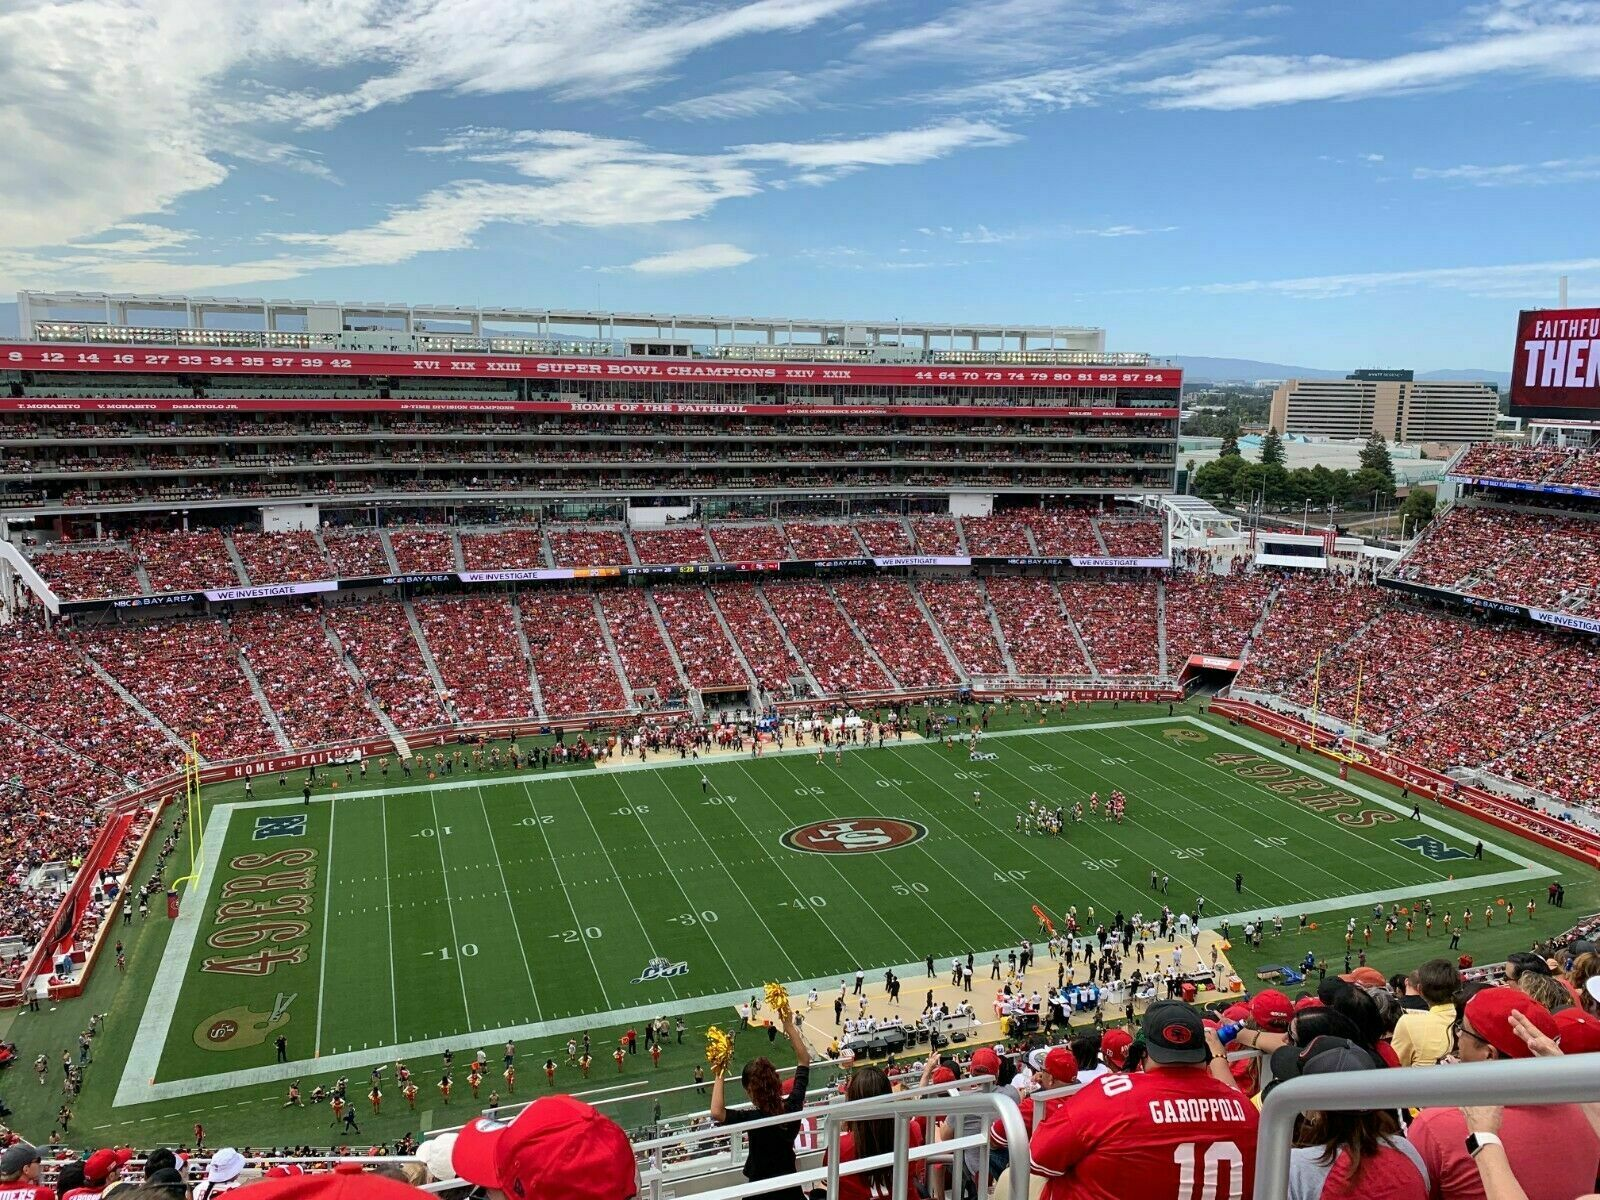 2 San Francisco 49ers Vs PACKERS 9/26 TICKETS PARKING PASS GREEN LOT1 - $570.00